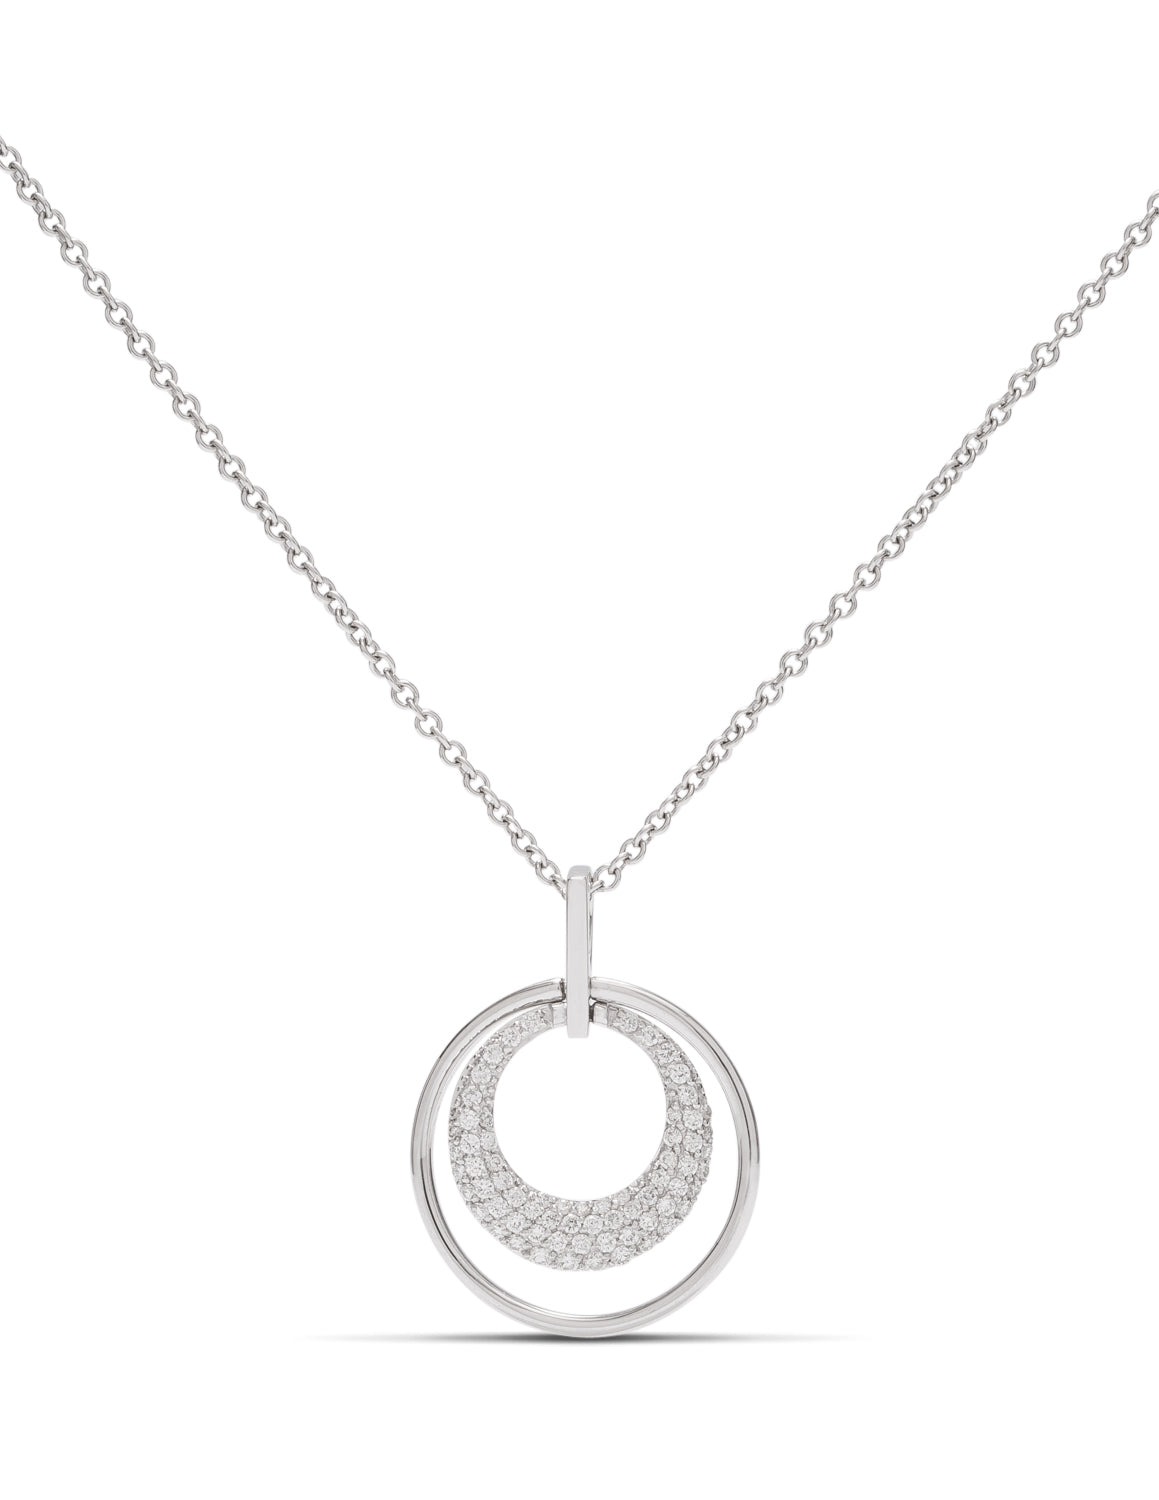 Double Circle Pave Pendant - Charles Koll Jewellers